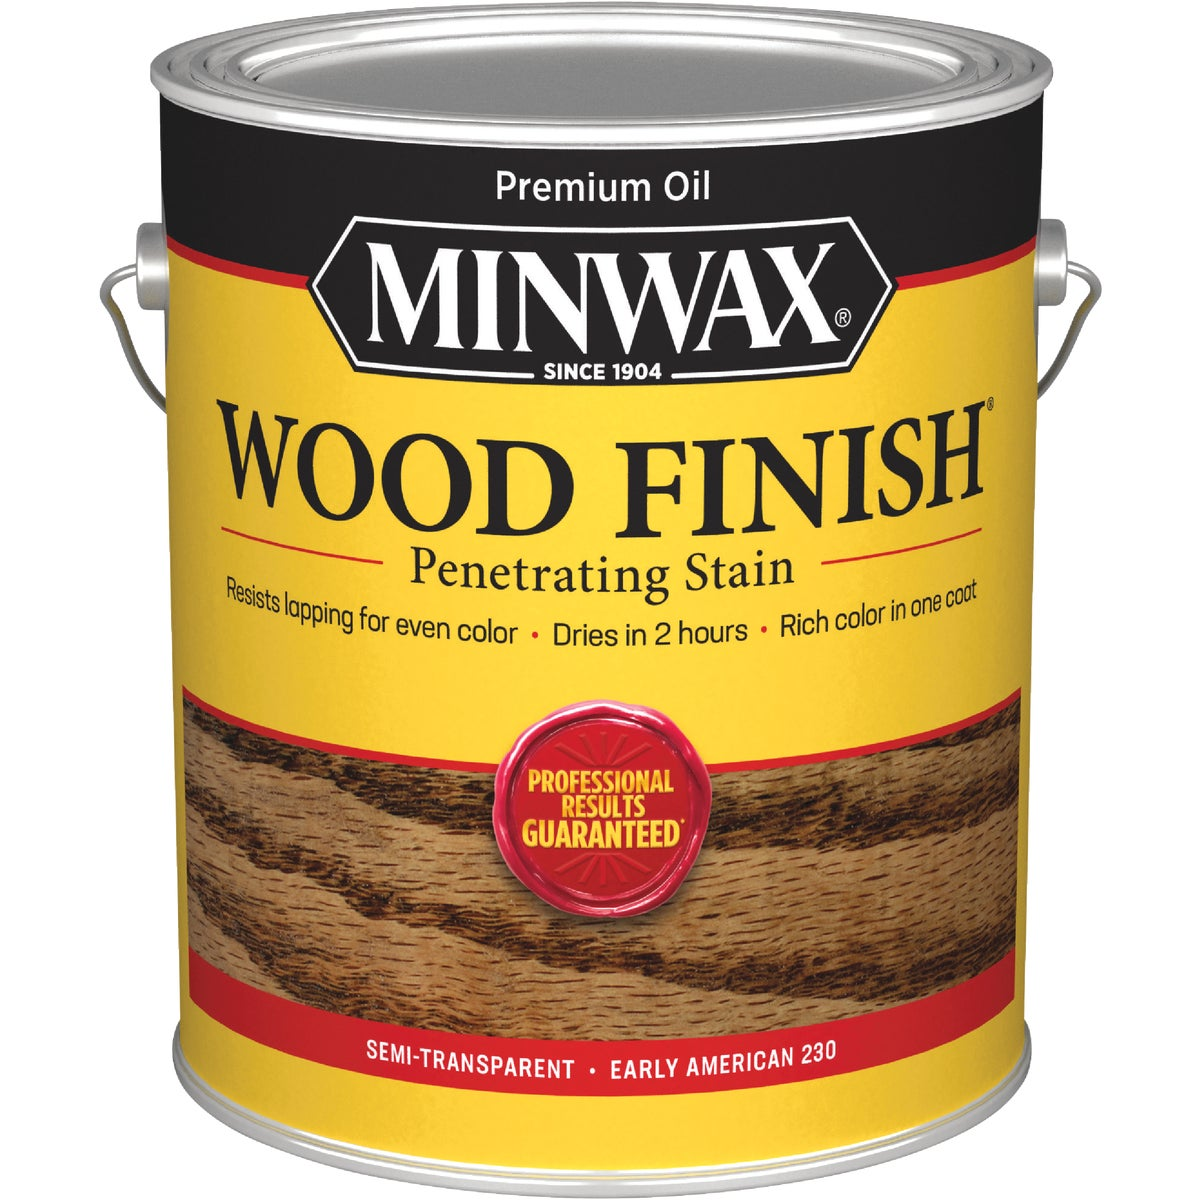 EARLY AMERICN WOOD STAIN - 71008 by Minwax Company